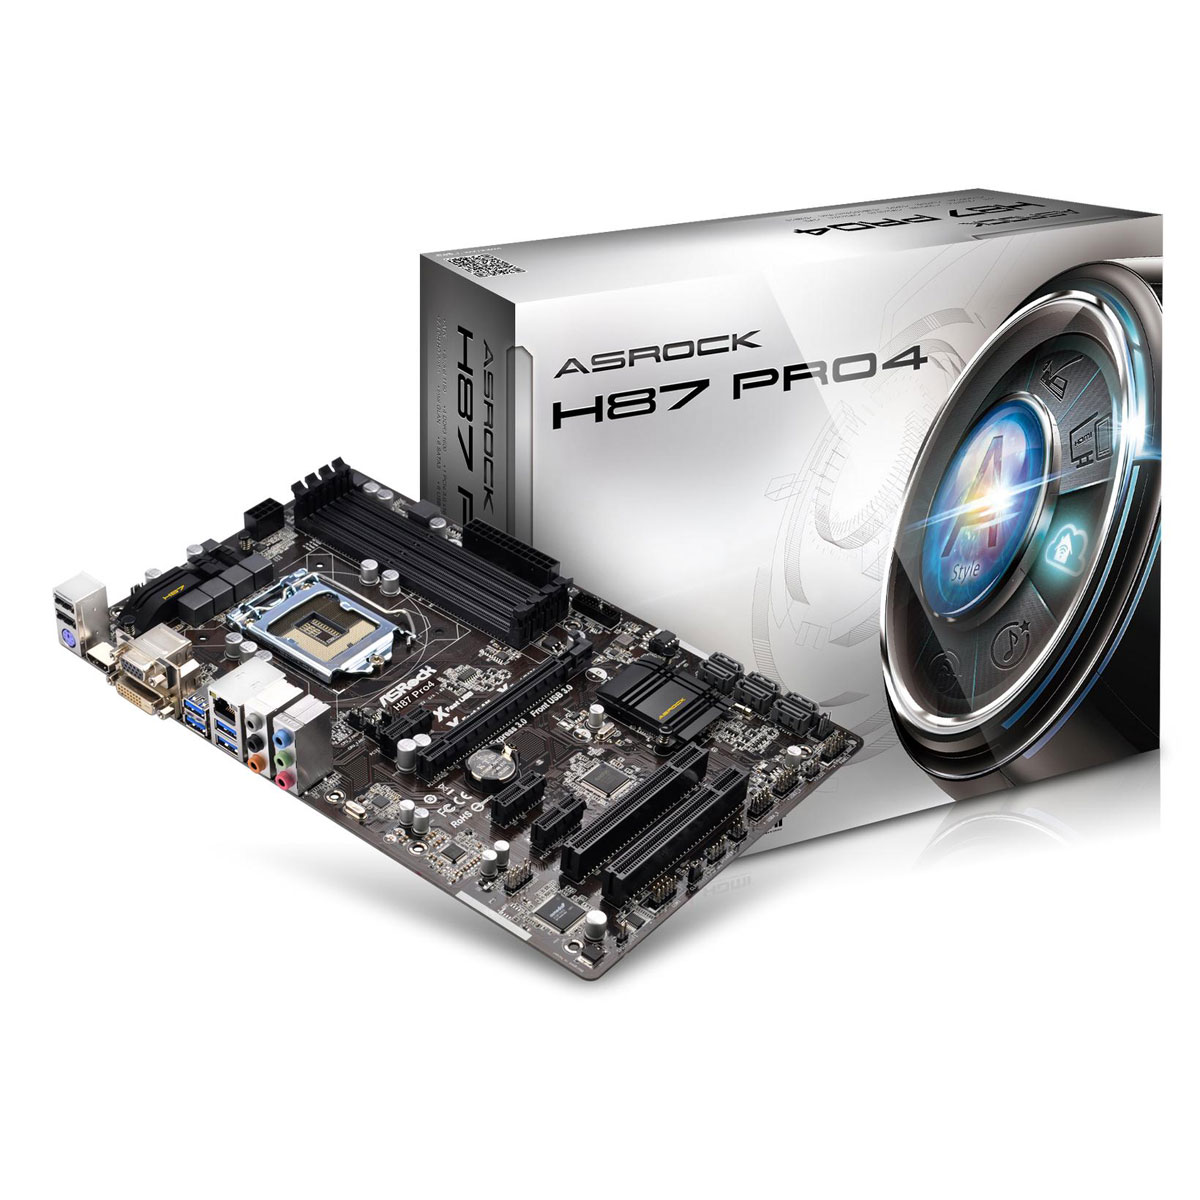 Carte mère ASRock H87 Pro4 Carte mère ATX Socket 1150 Intel H87 Express - SATA 6Gb/s - USB 3.0 - 1x PCI-Express 3.0 16x